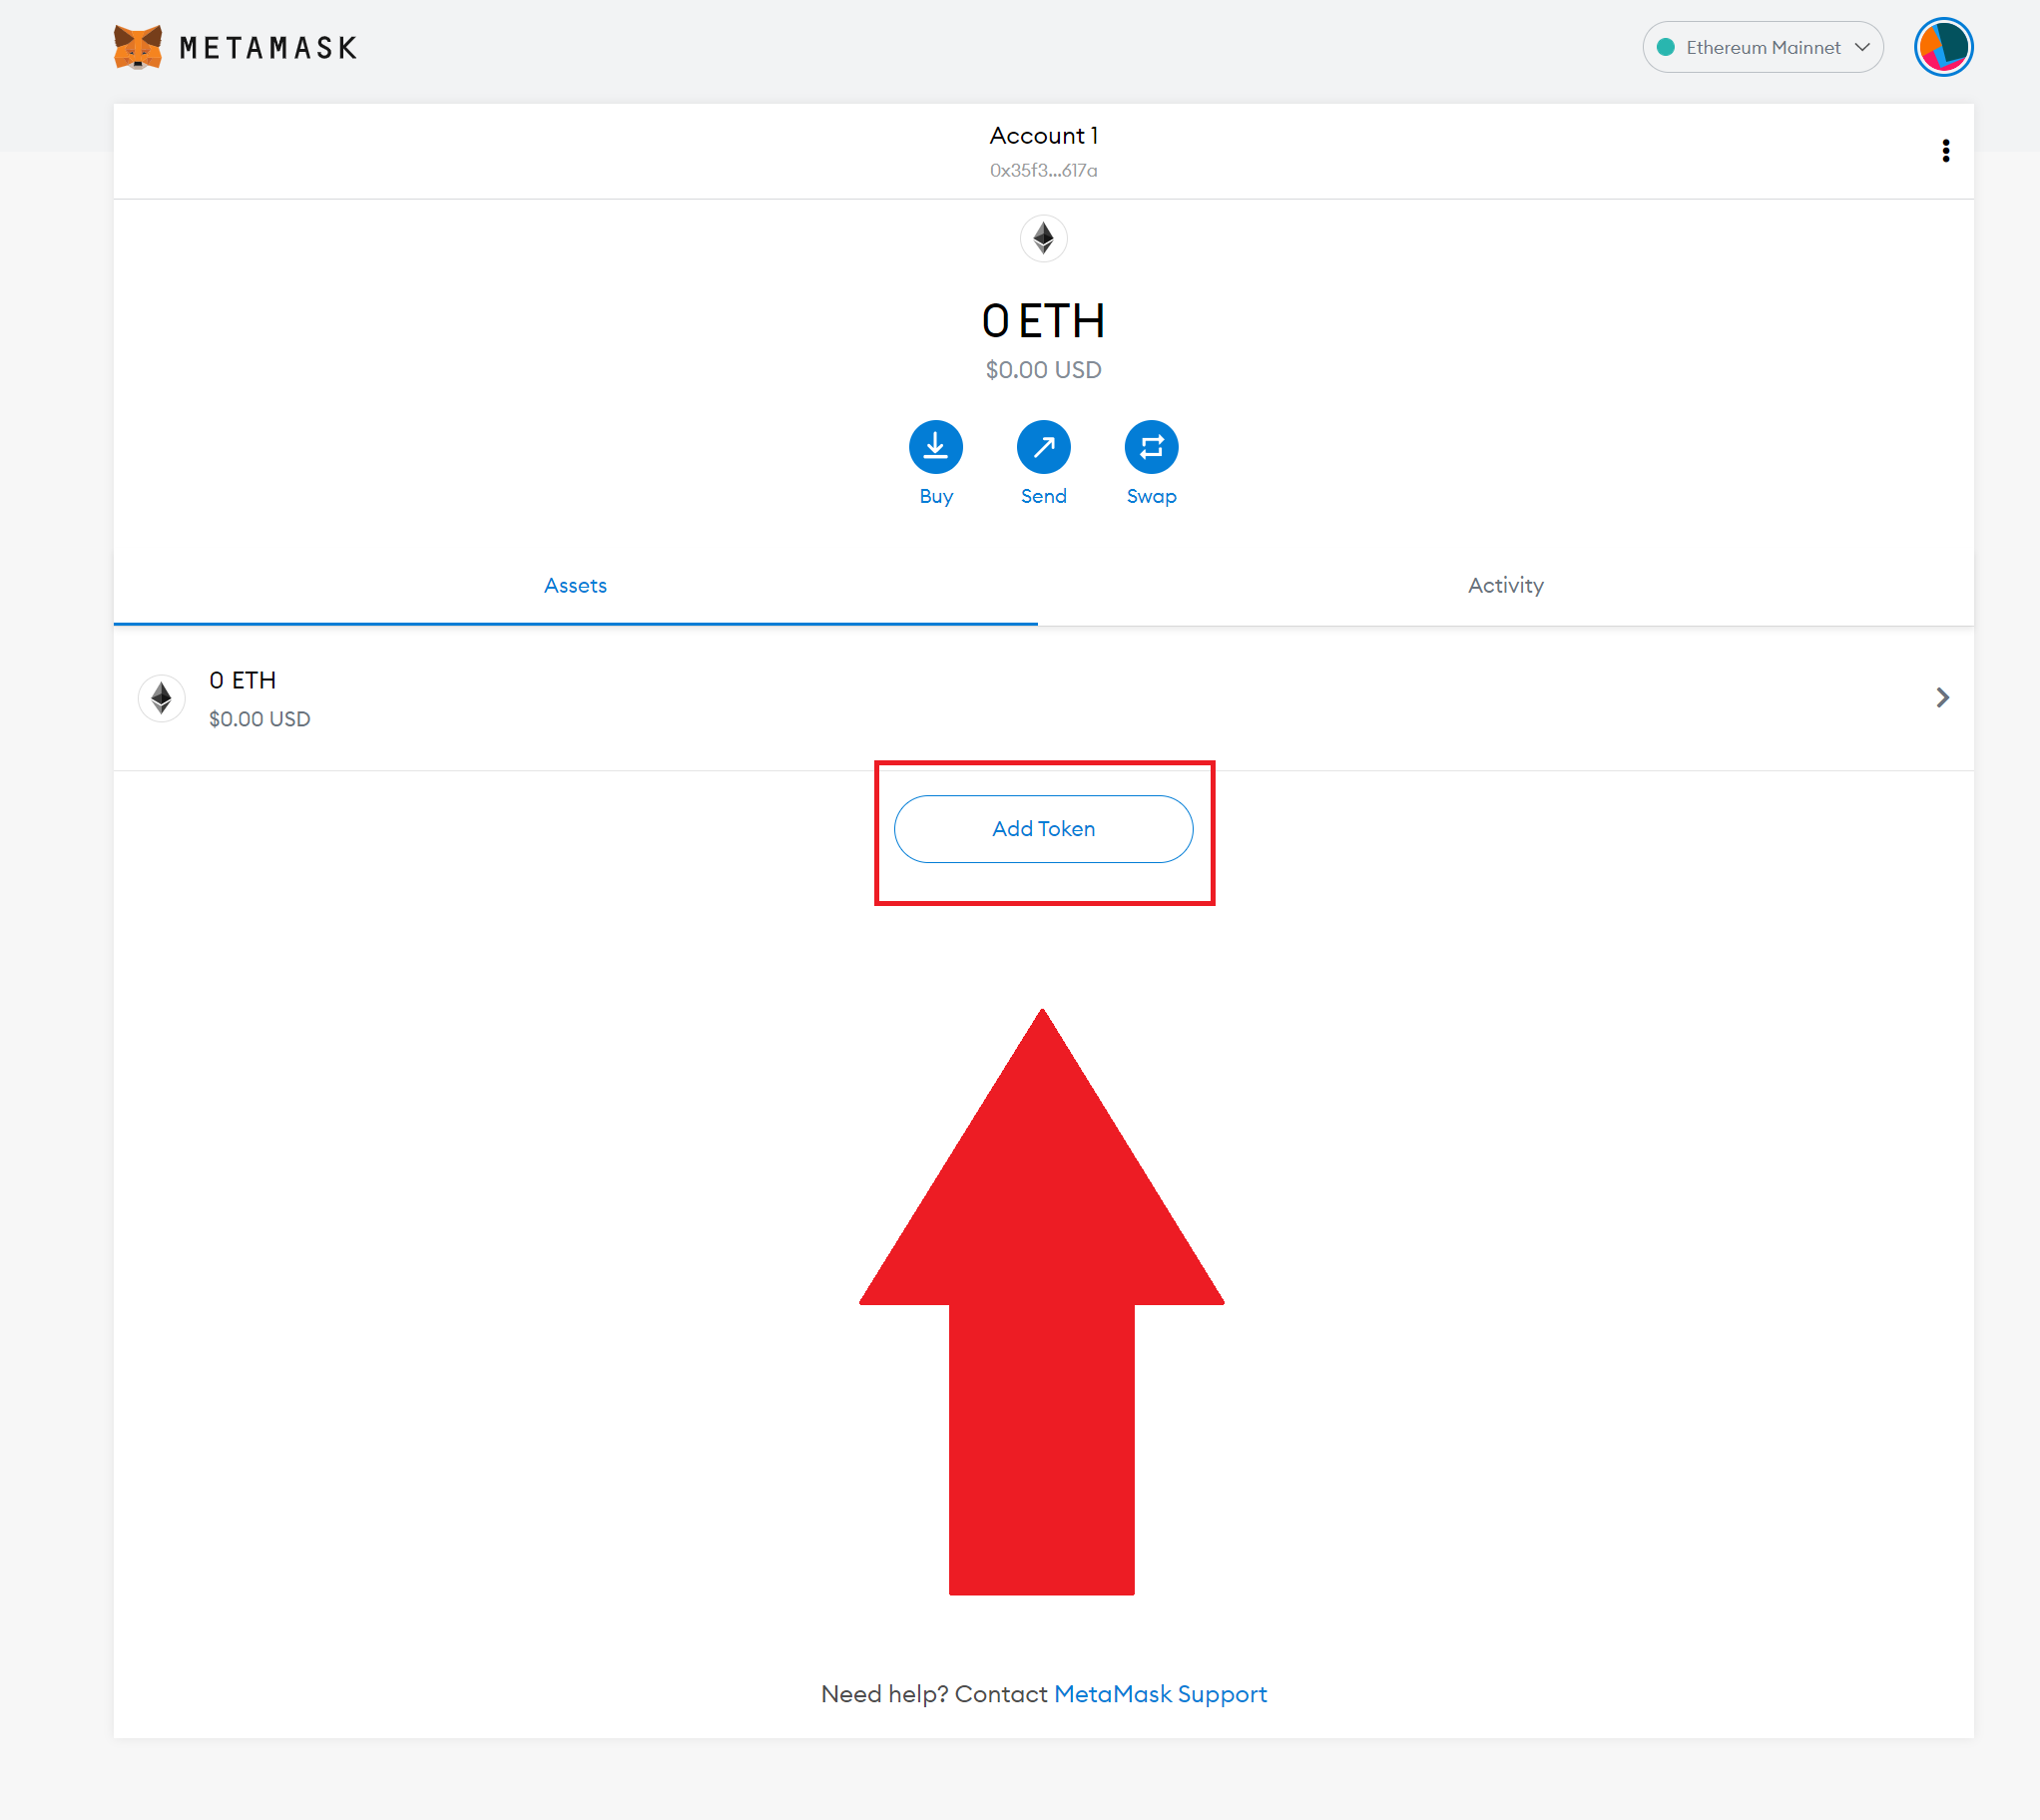 Add XFL to your MetaMask